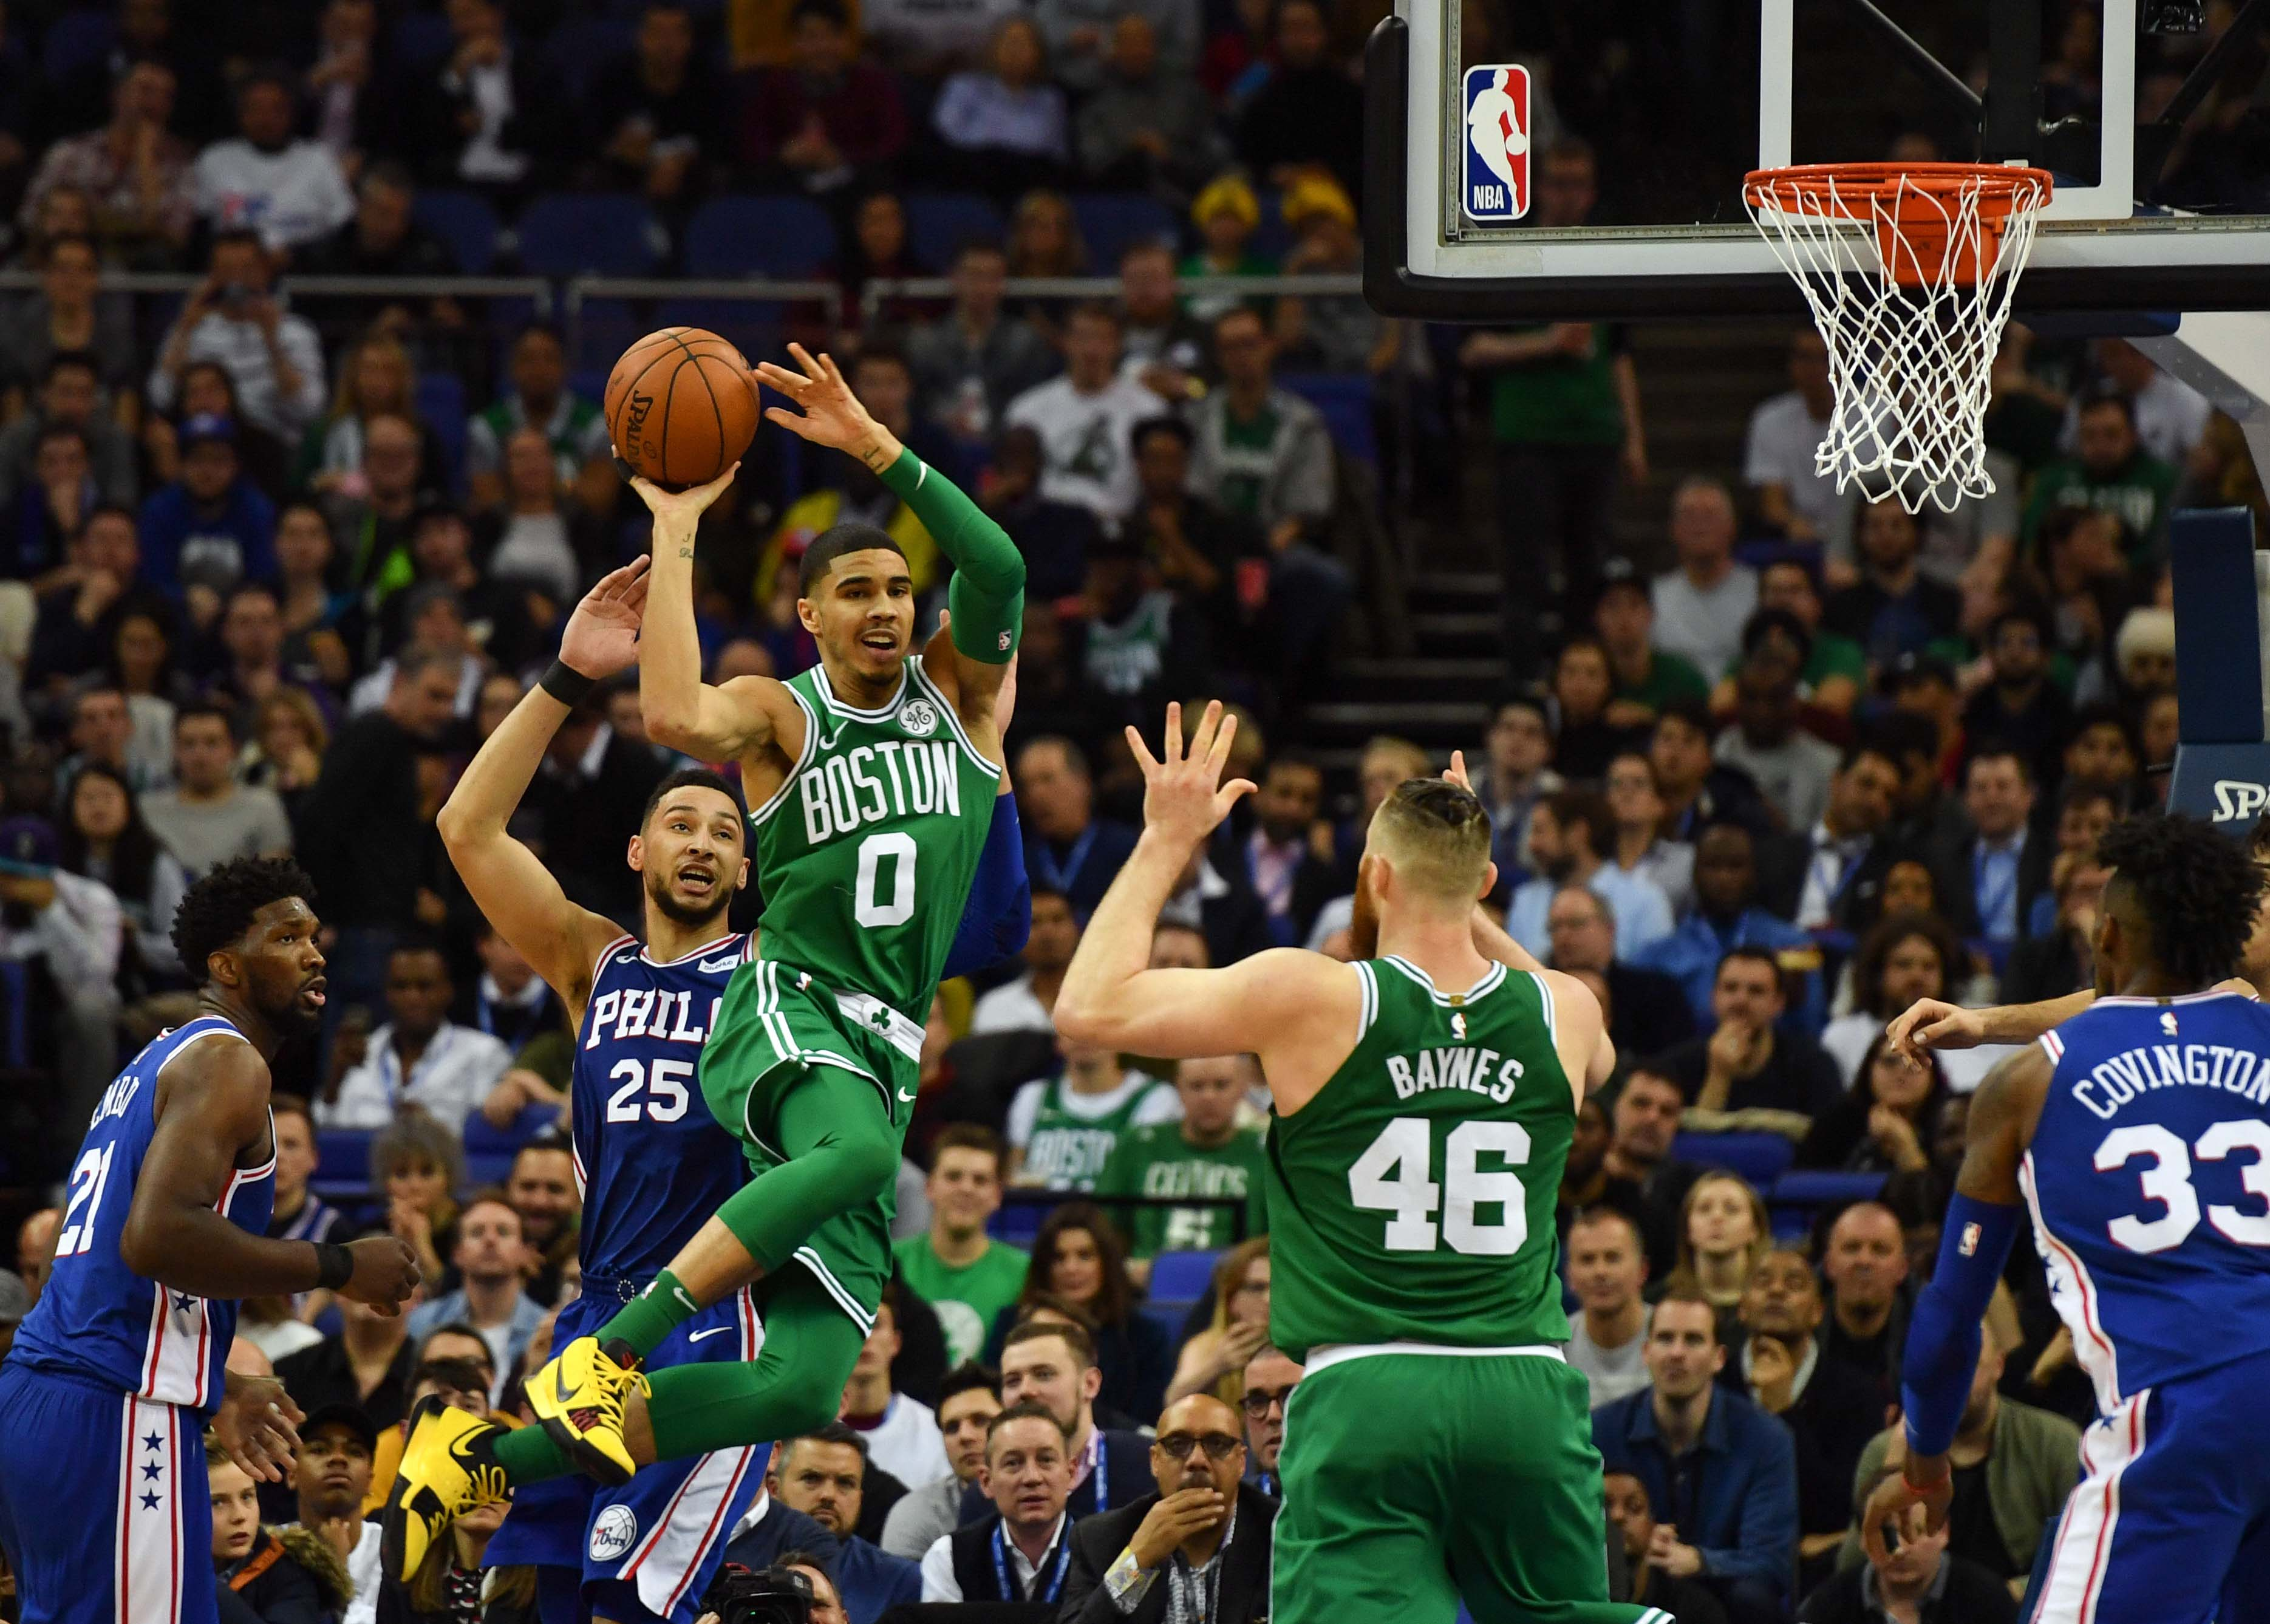 Epic 22 Point London Comeback Fuels Boston Victory Over Philly 114-103